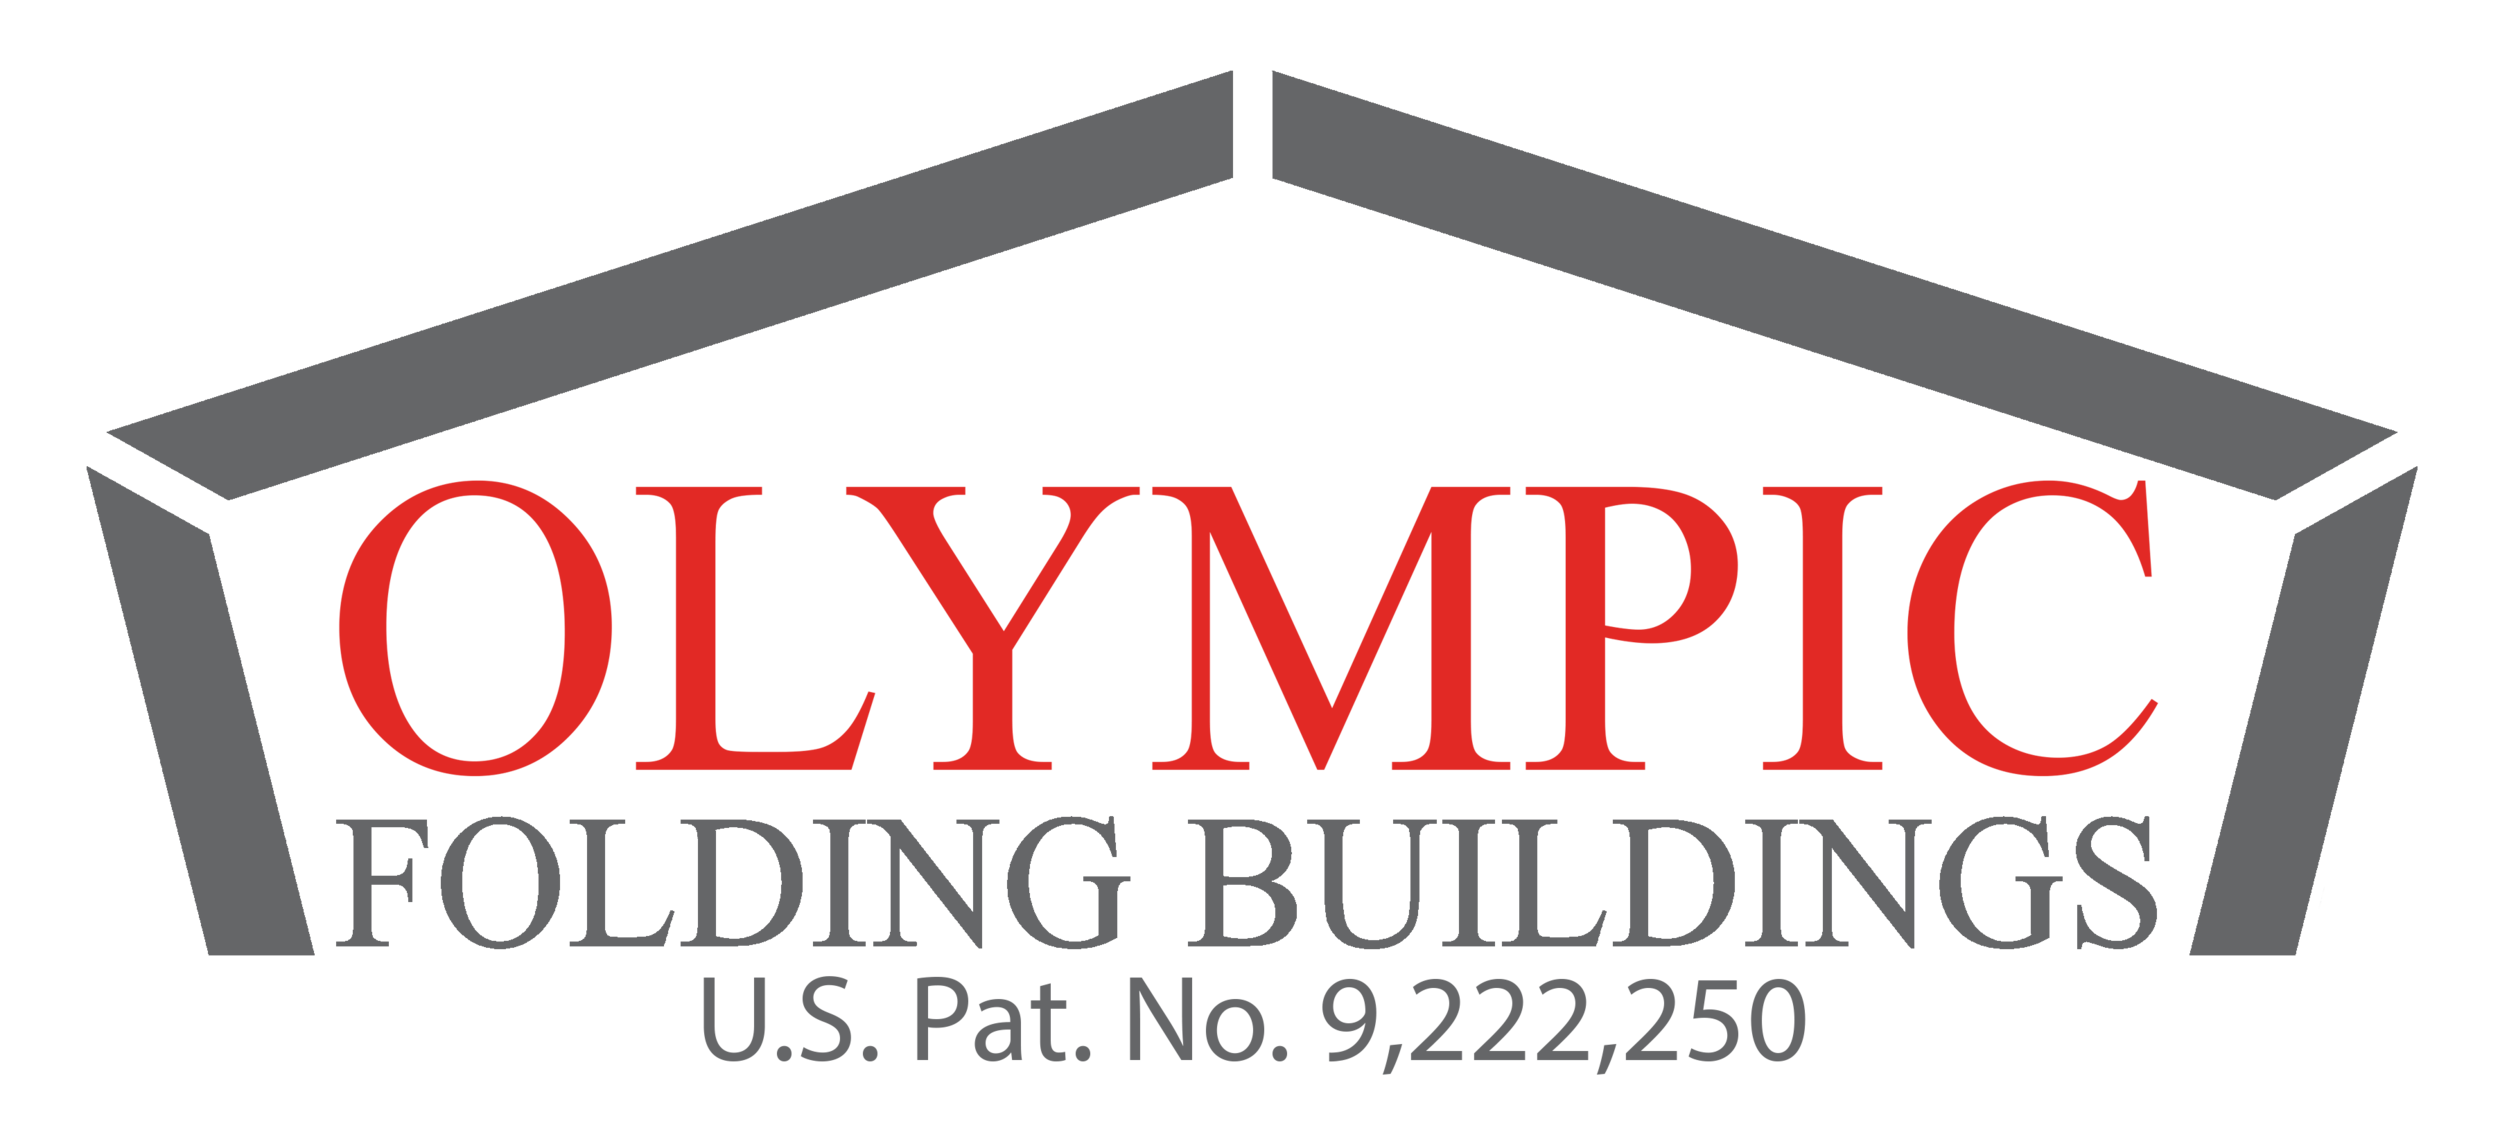 Olympic Folding Building logo